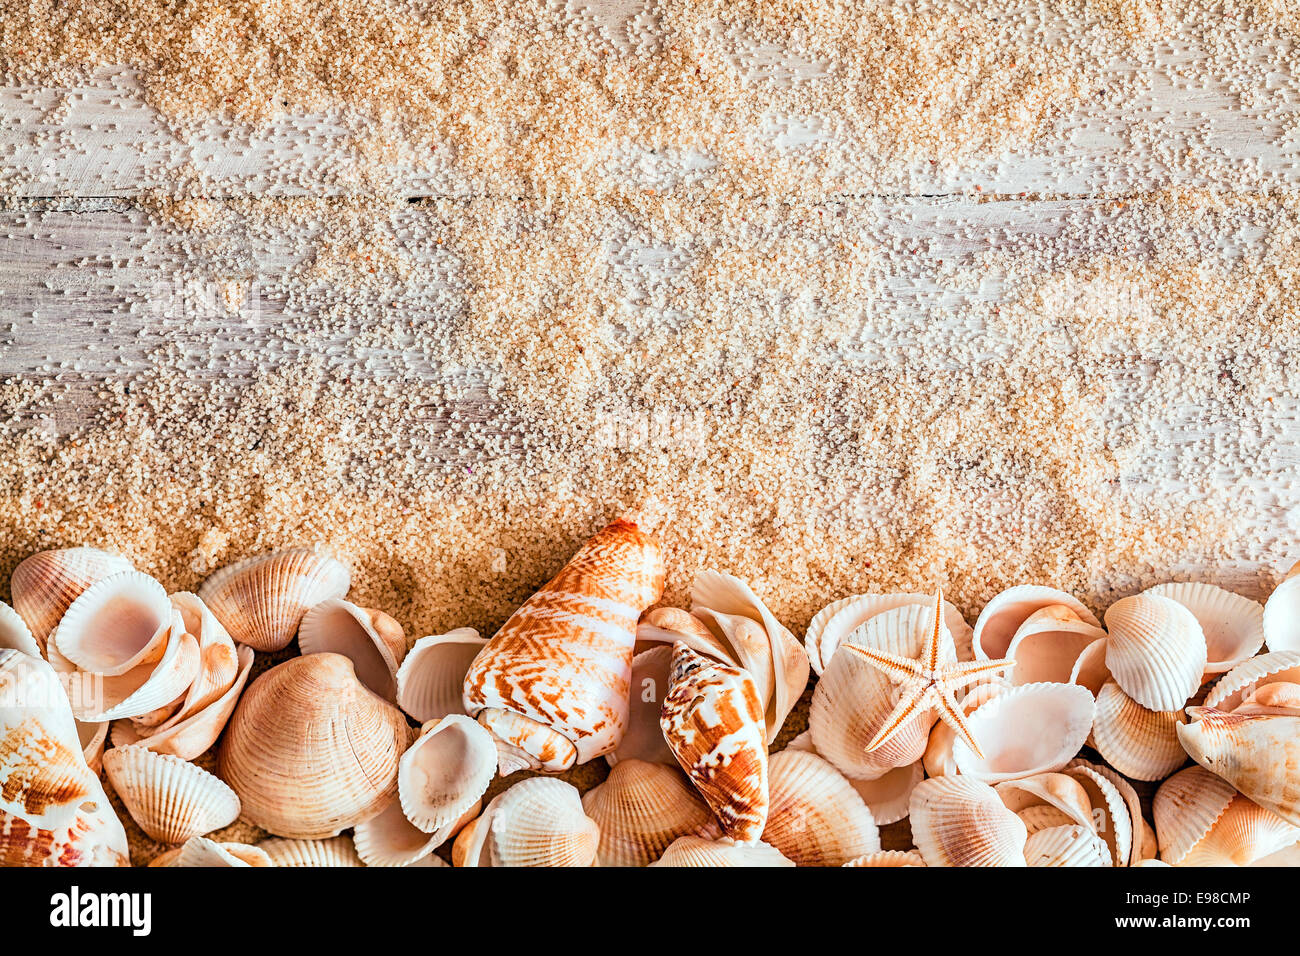 border of assorted seashells including a cone bivalves conch and